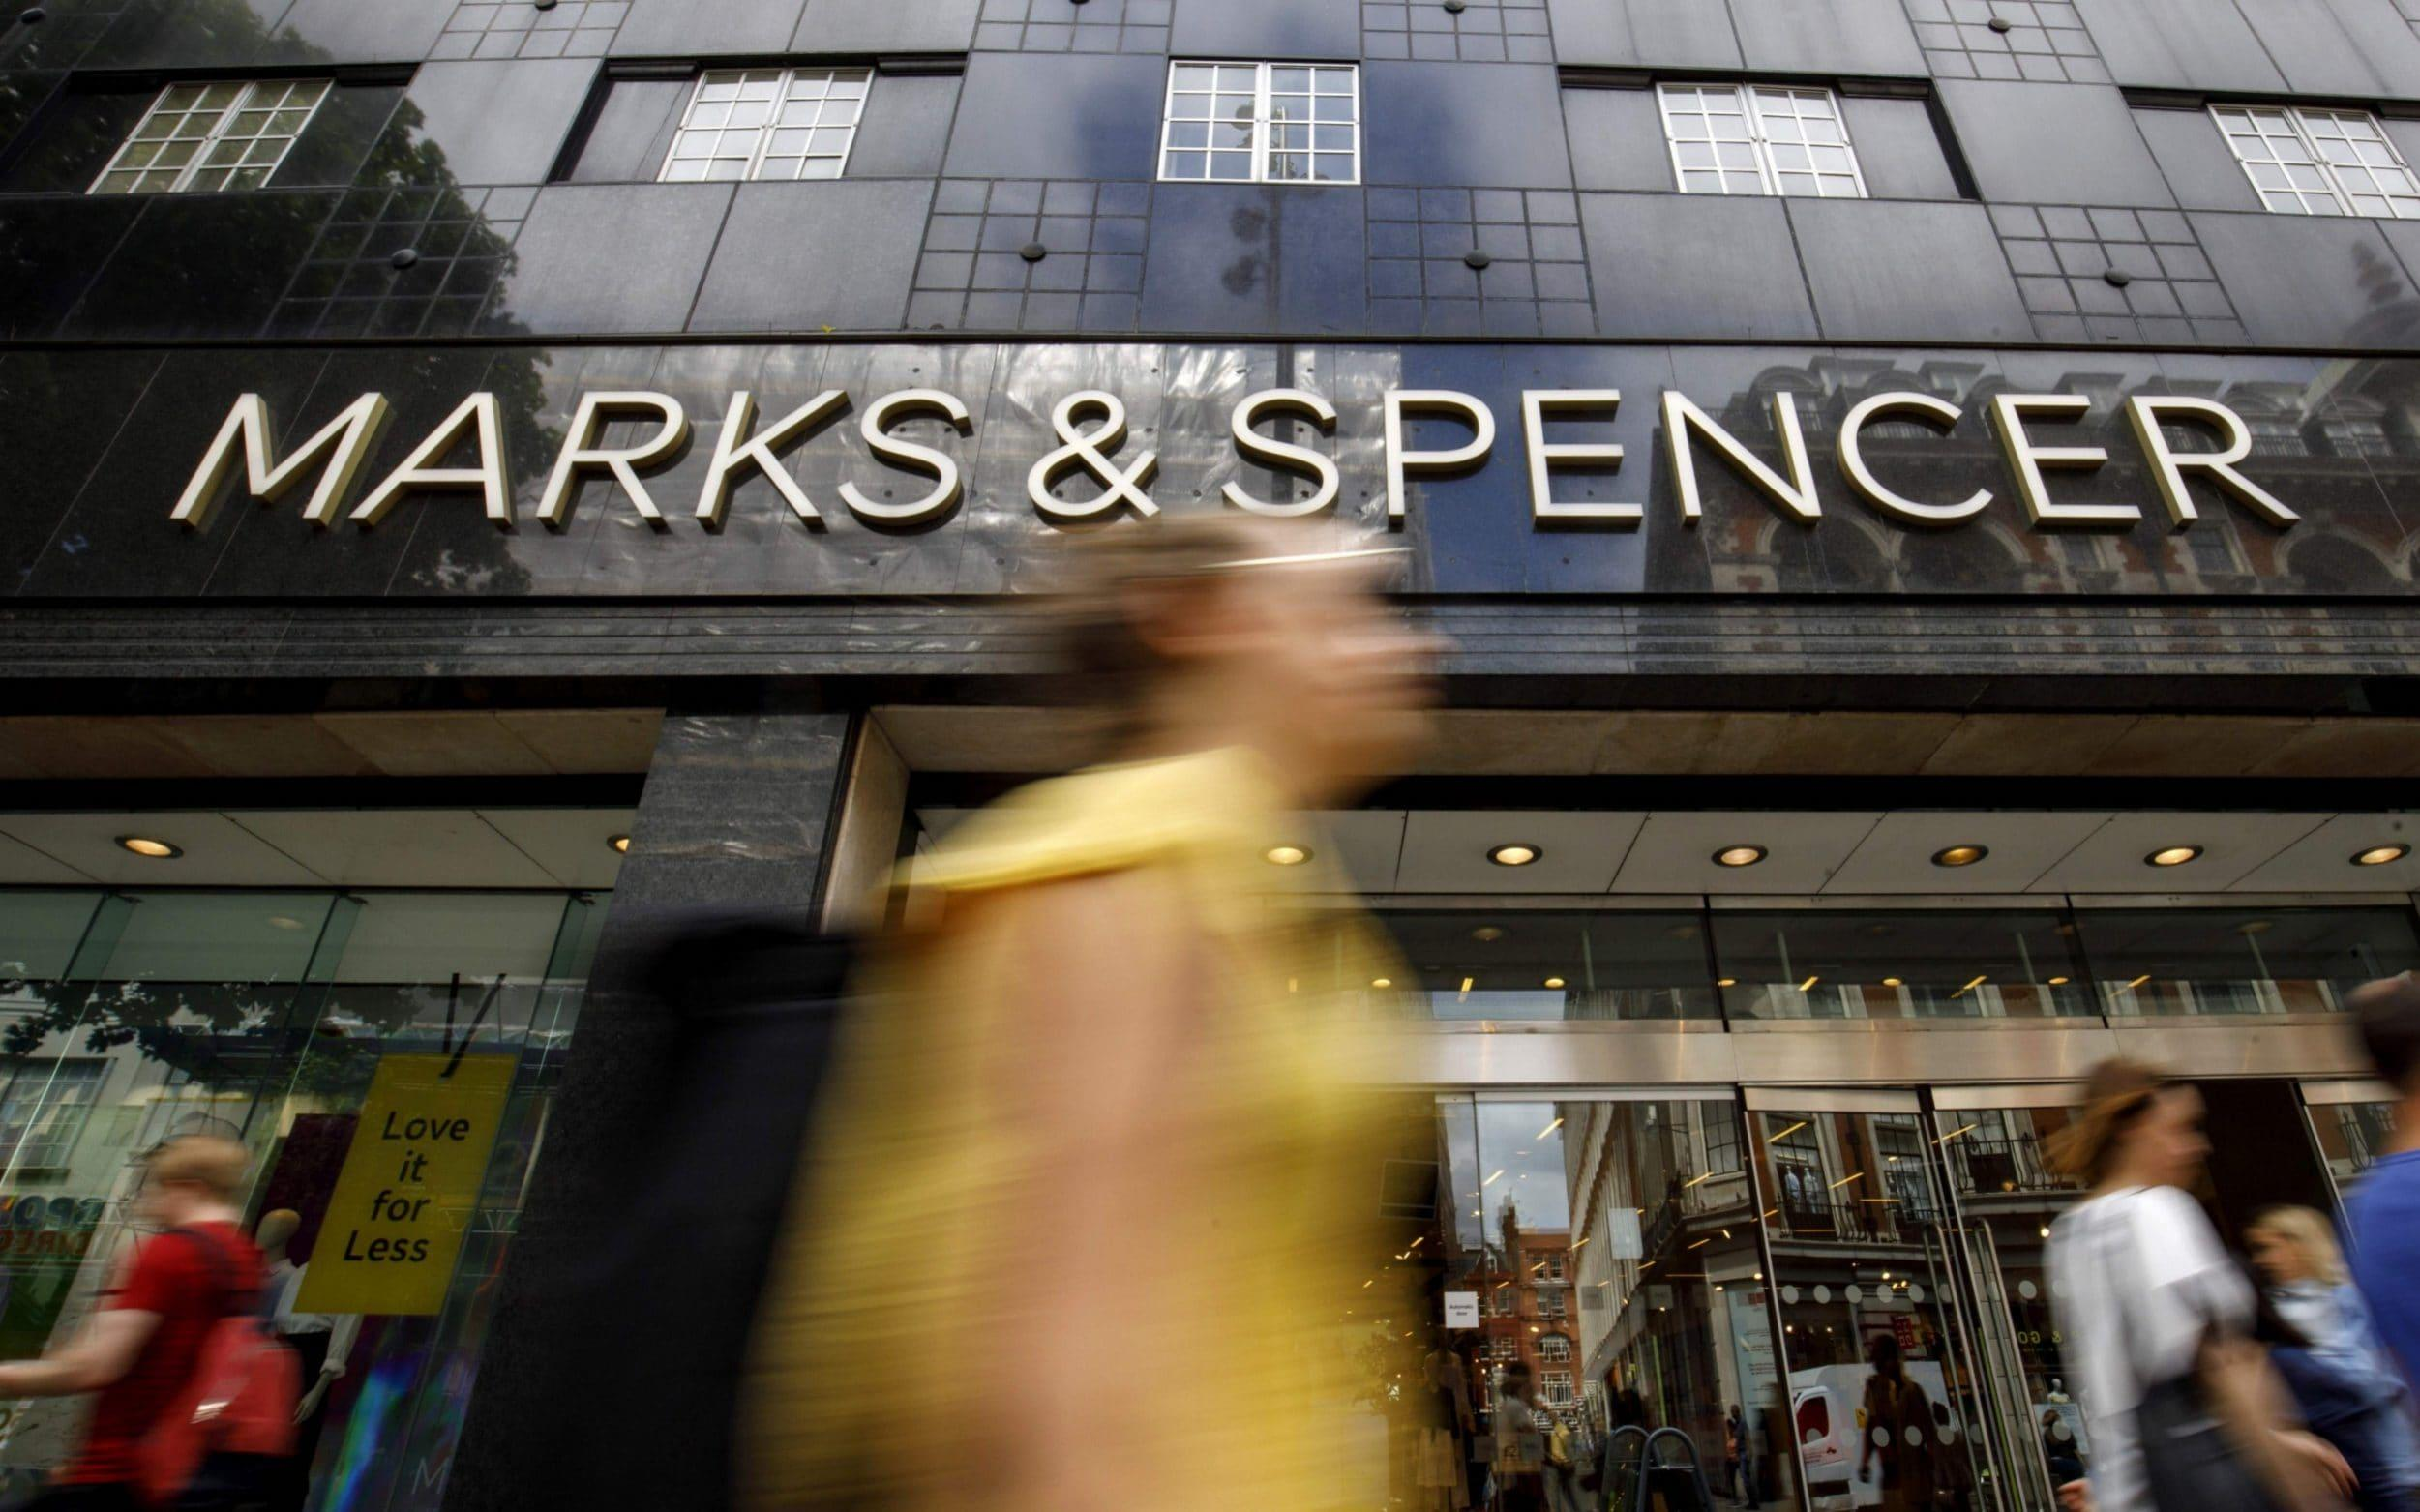 What will a Marks and Spencer shopping trip look like after lockdown?